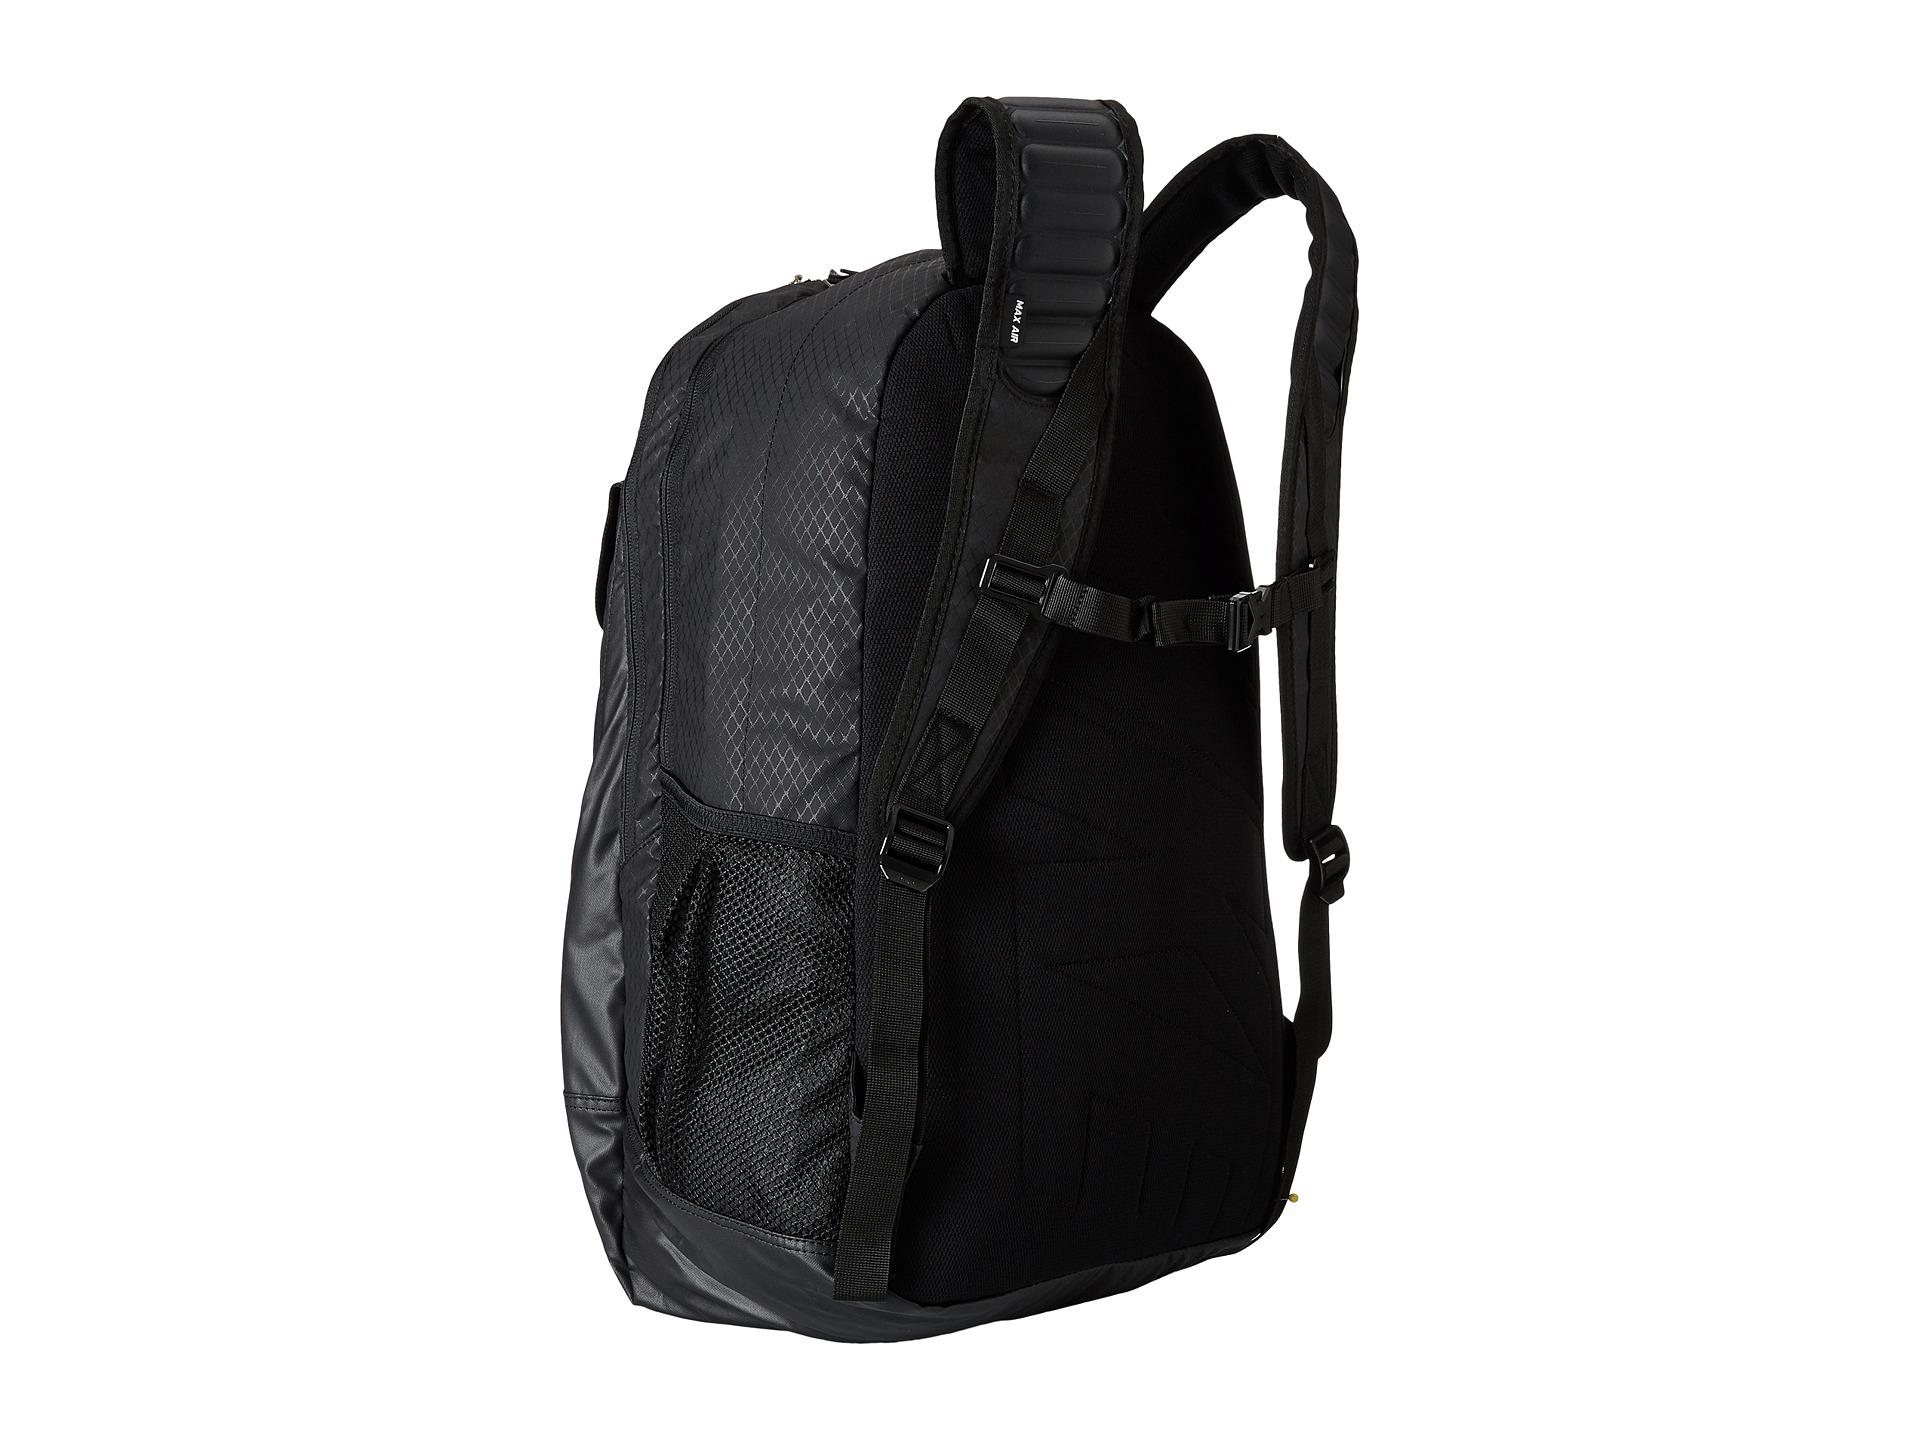 Lyst - Nike Team Training Max Air Xl Backpack in Black